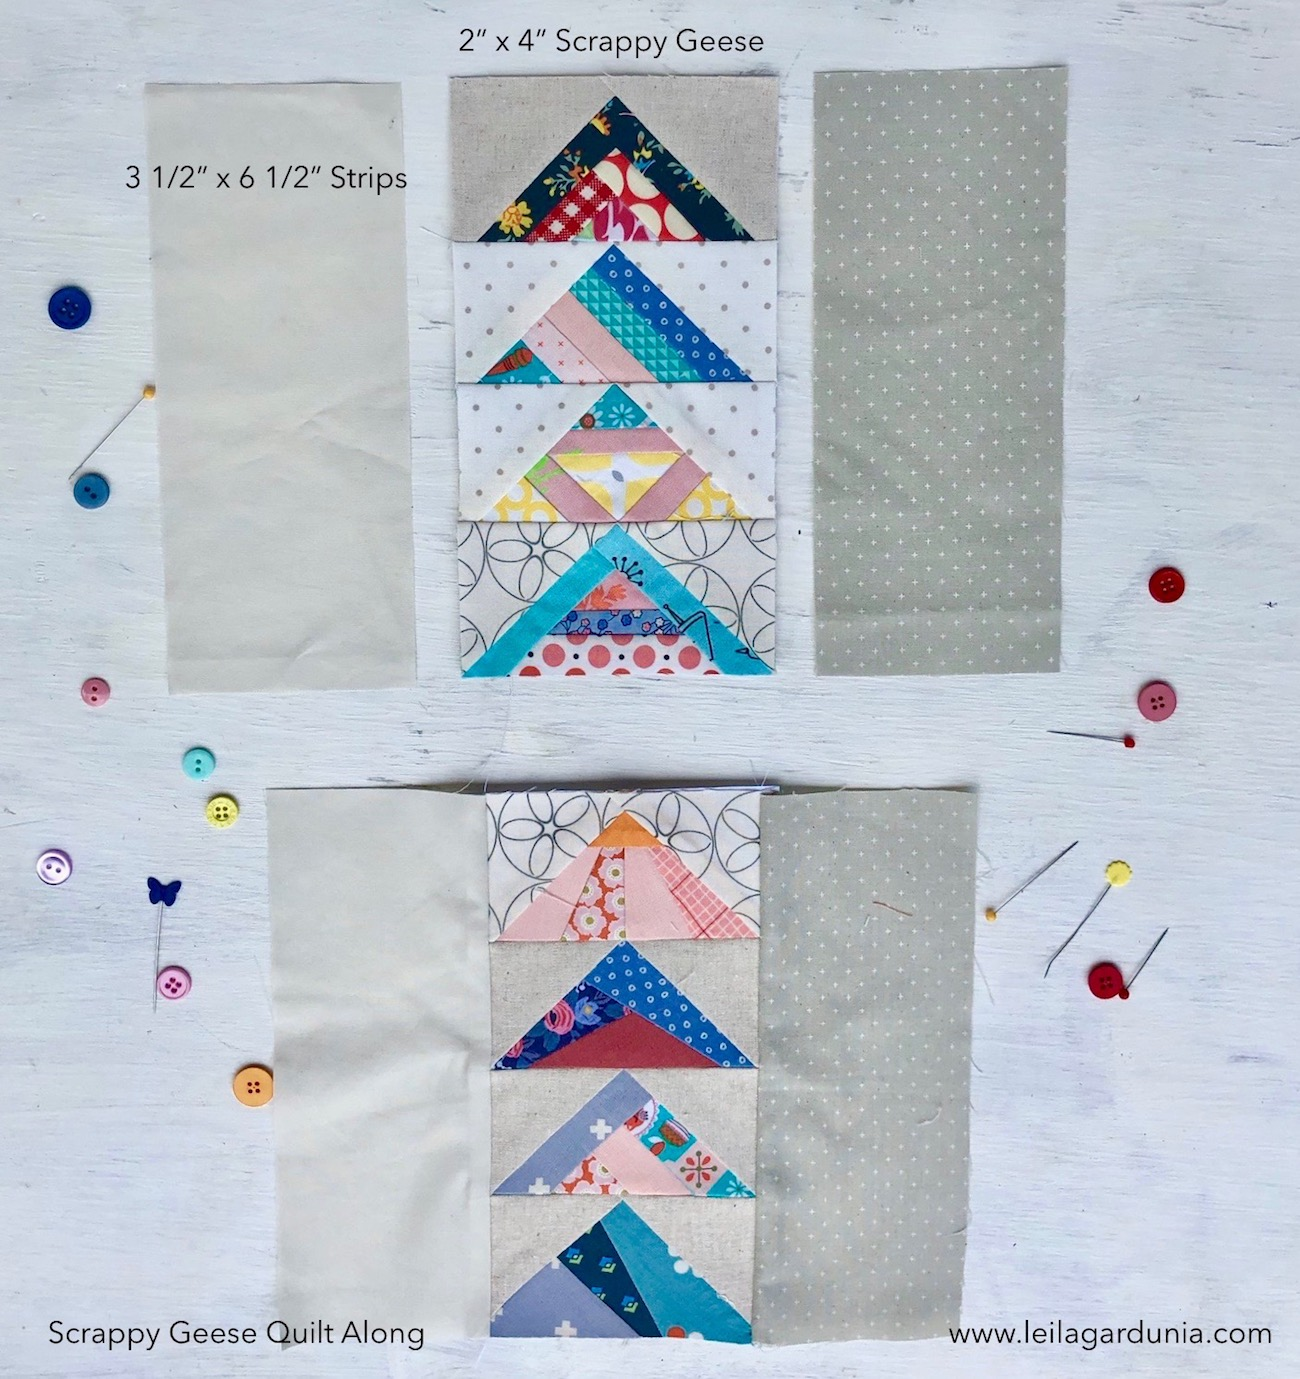 2 x 4 scrappy geese quilt along block instructions.jpg